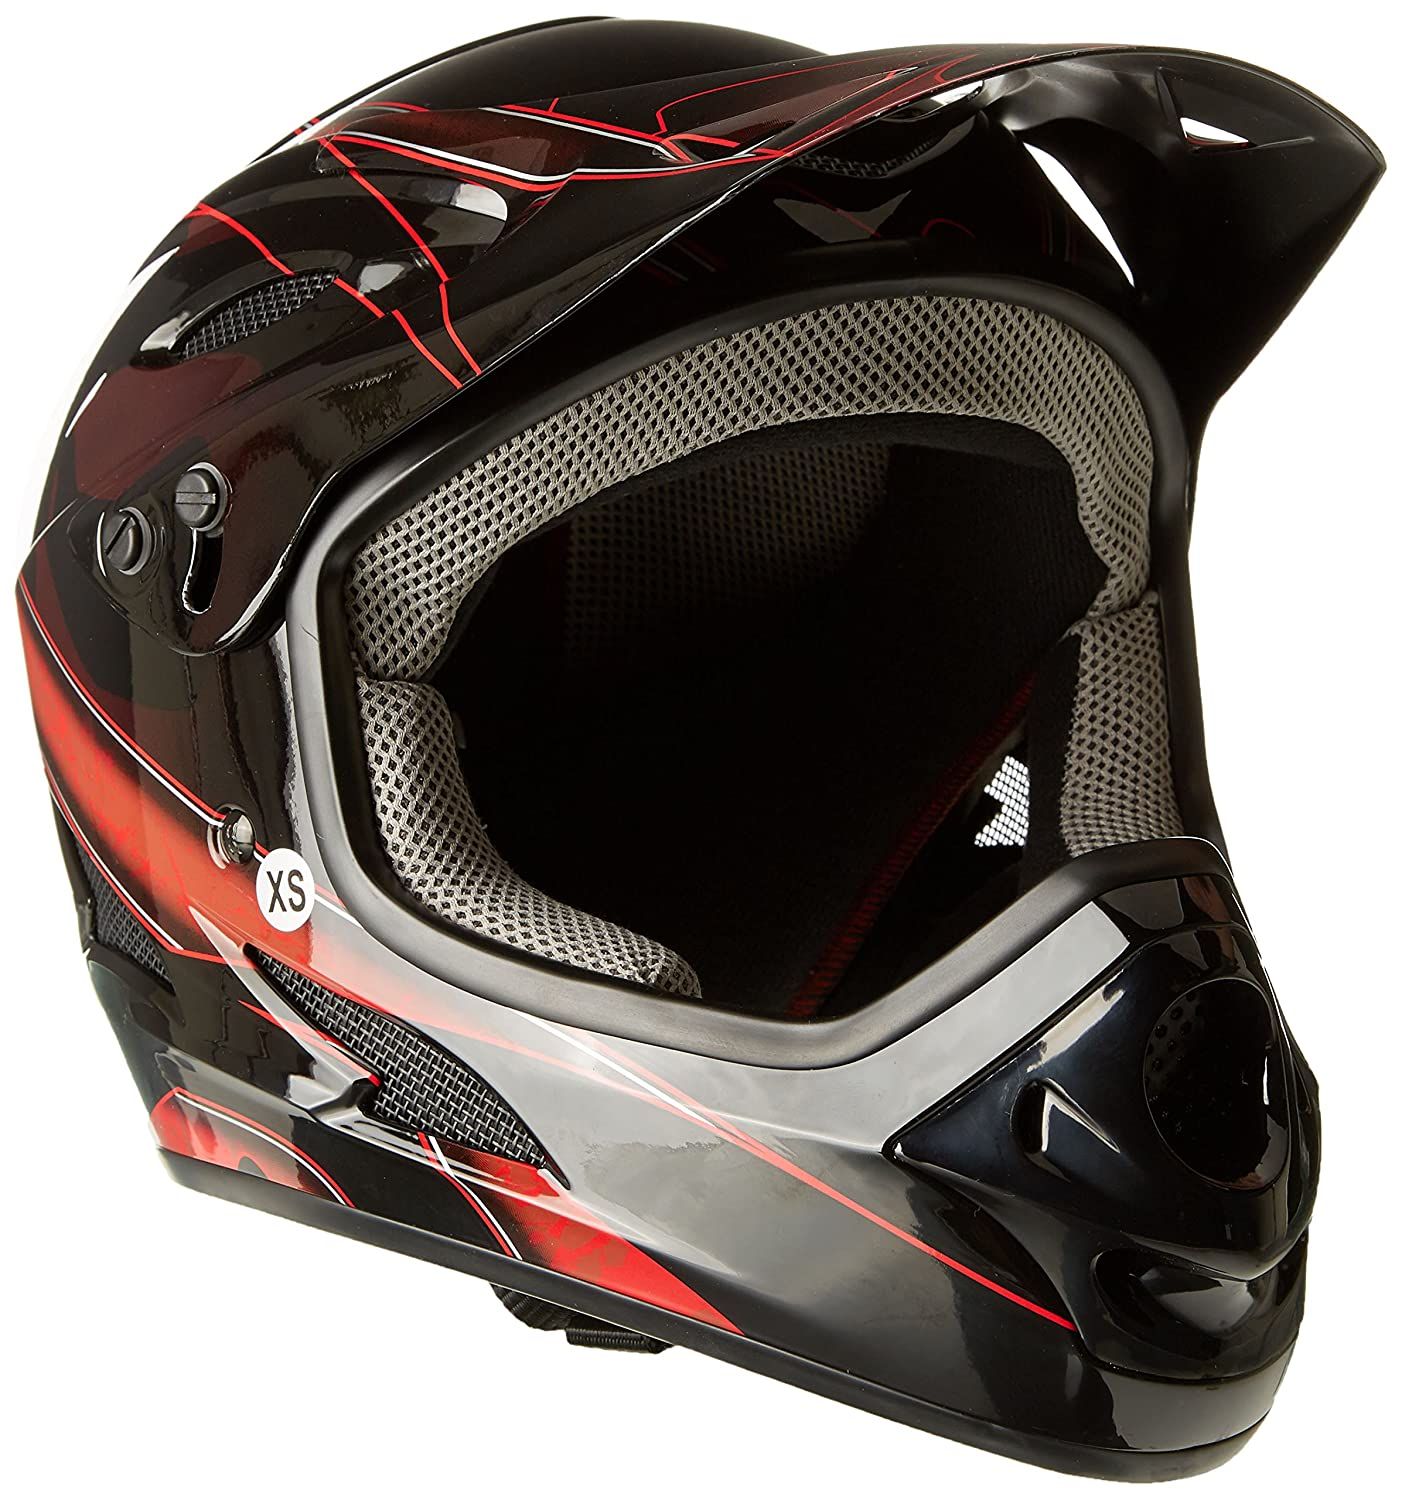 Kali Protectives Savara FF - Casco de Ciclismo, Color Negro ...